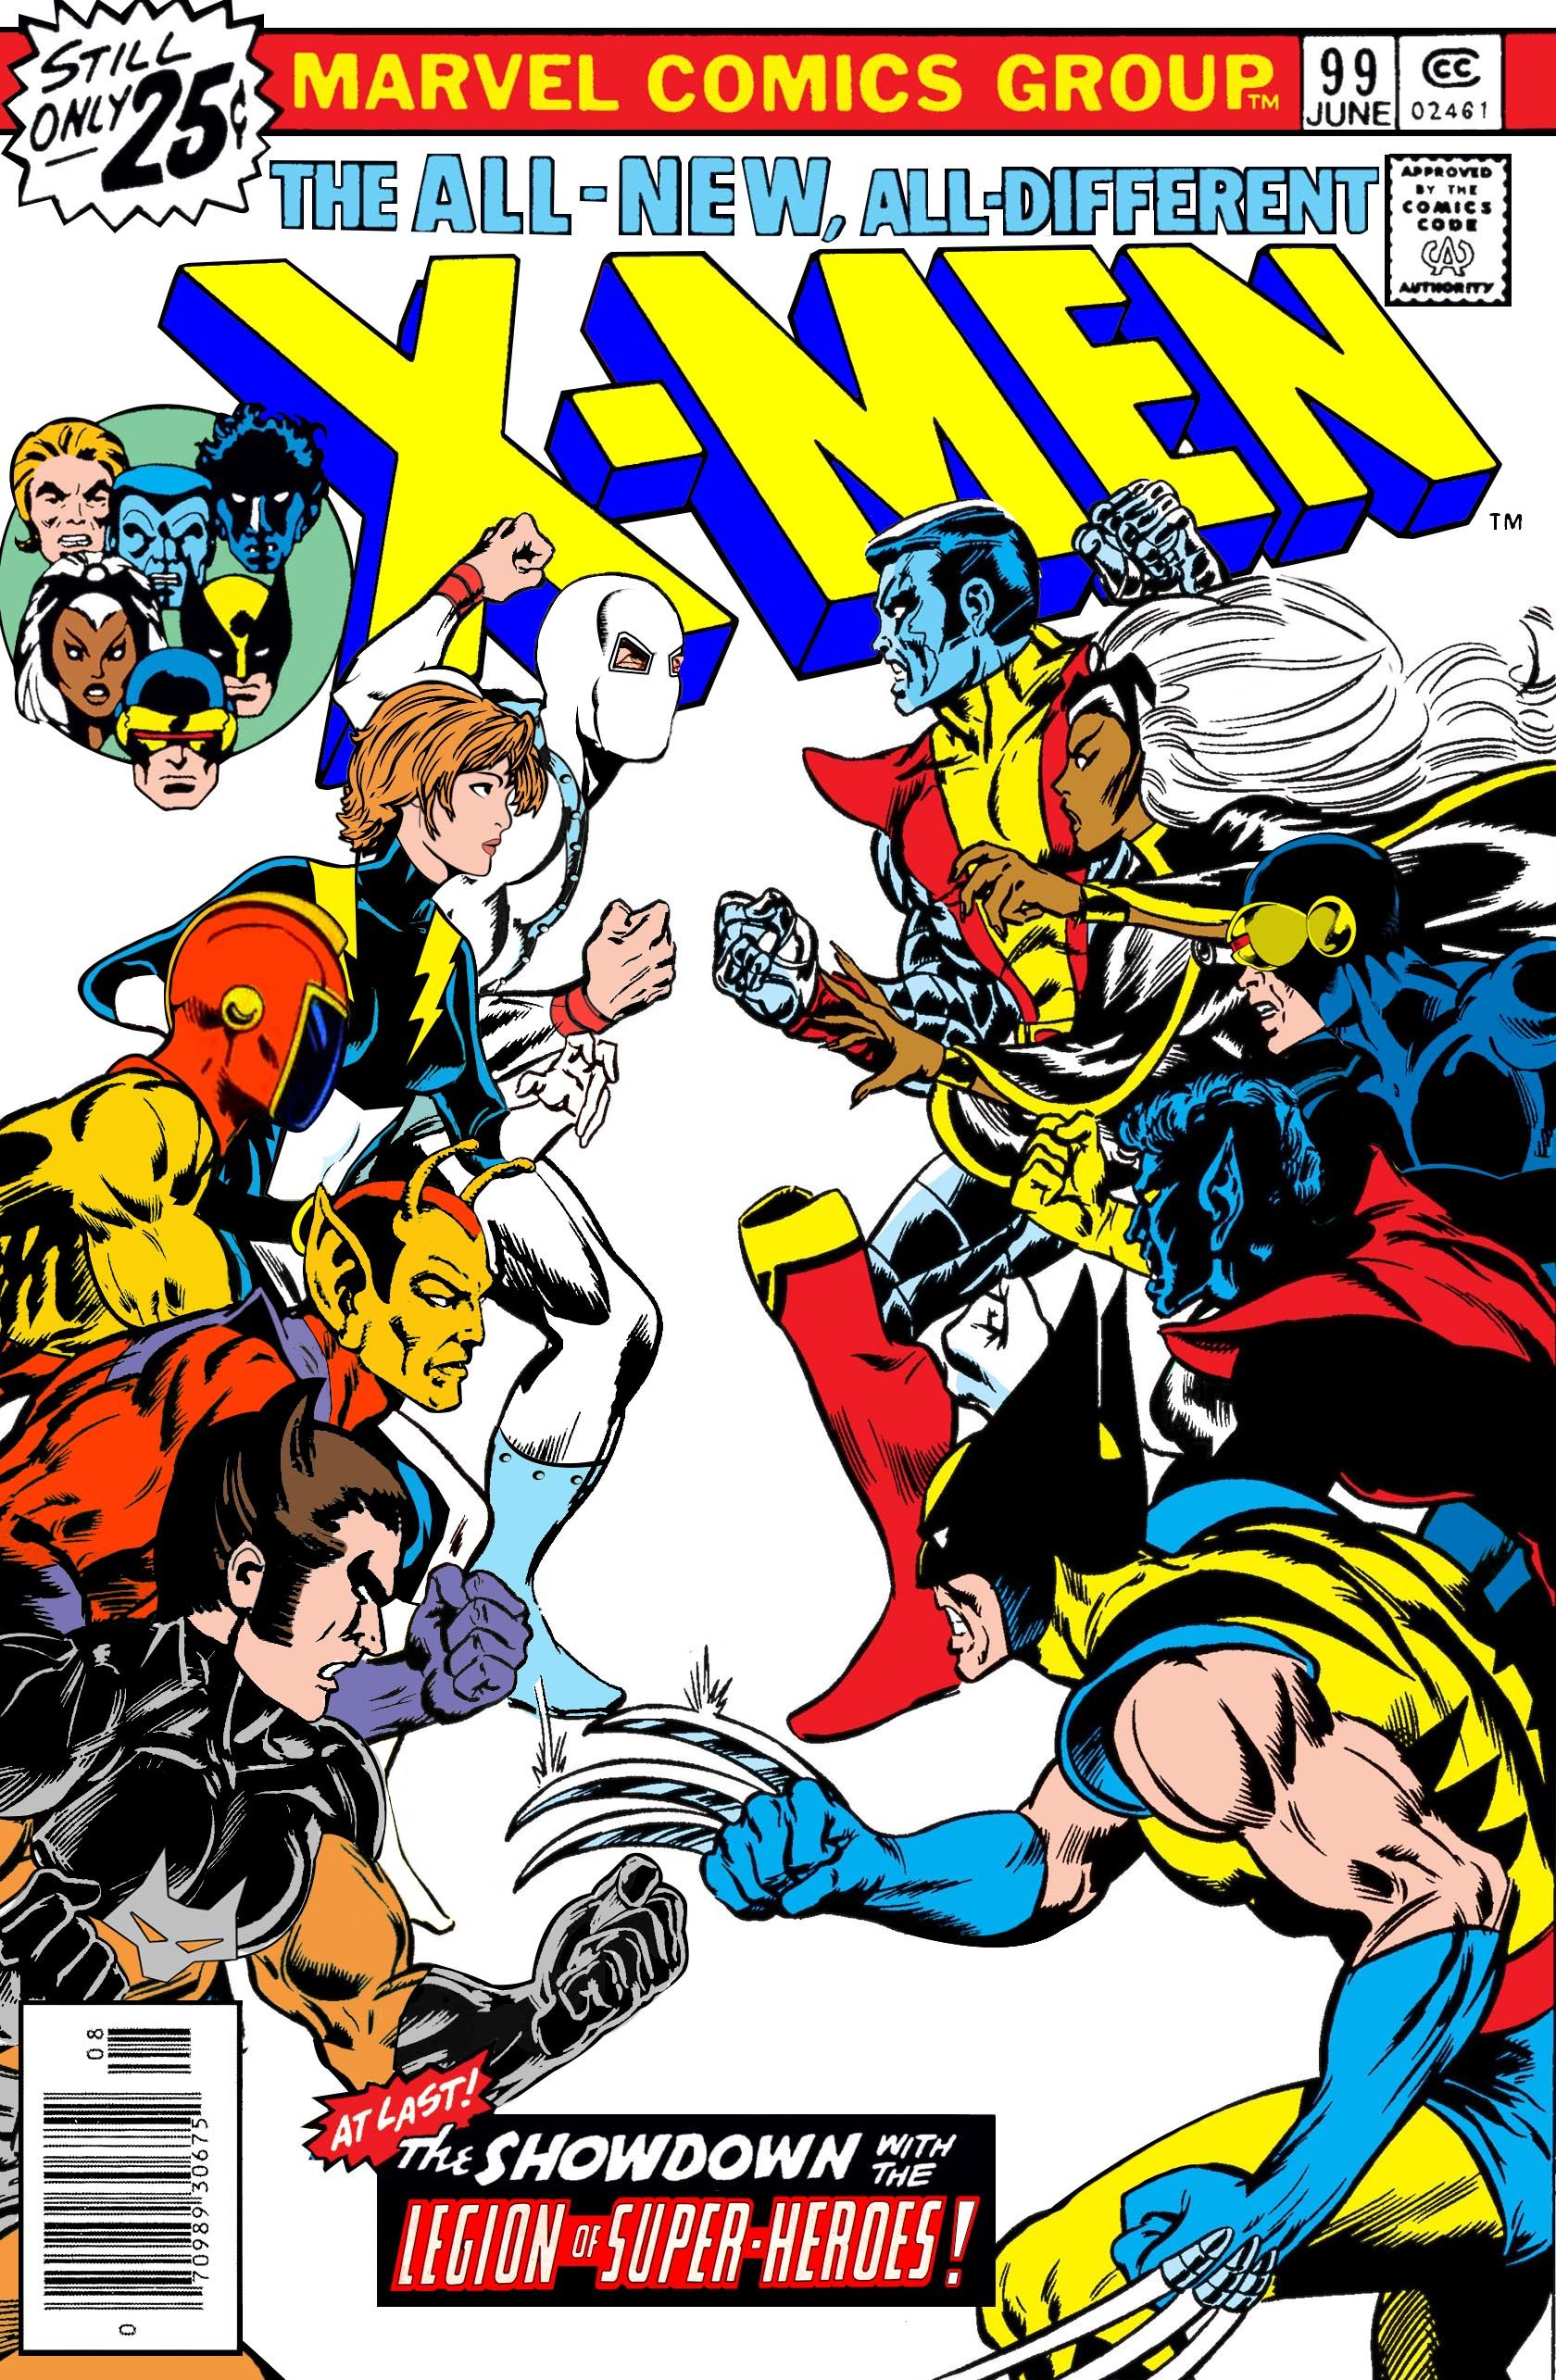 X Men Vs The Legion Of Super Heroes At Last Homage To X Men 99 Last Panel Created By Sasq Captain America Comic Books Comic Books Art Captain America Comic